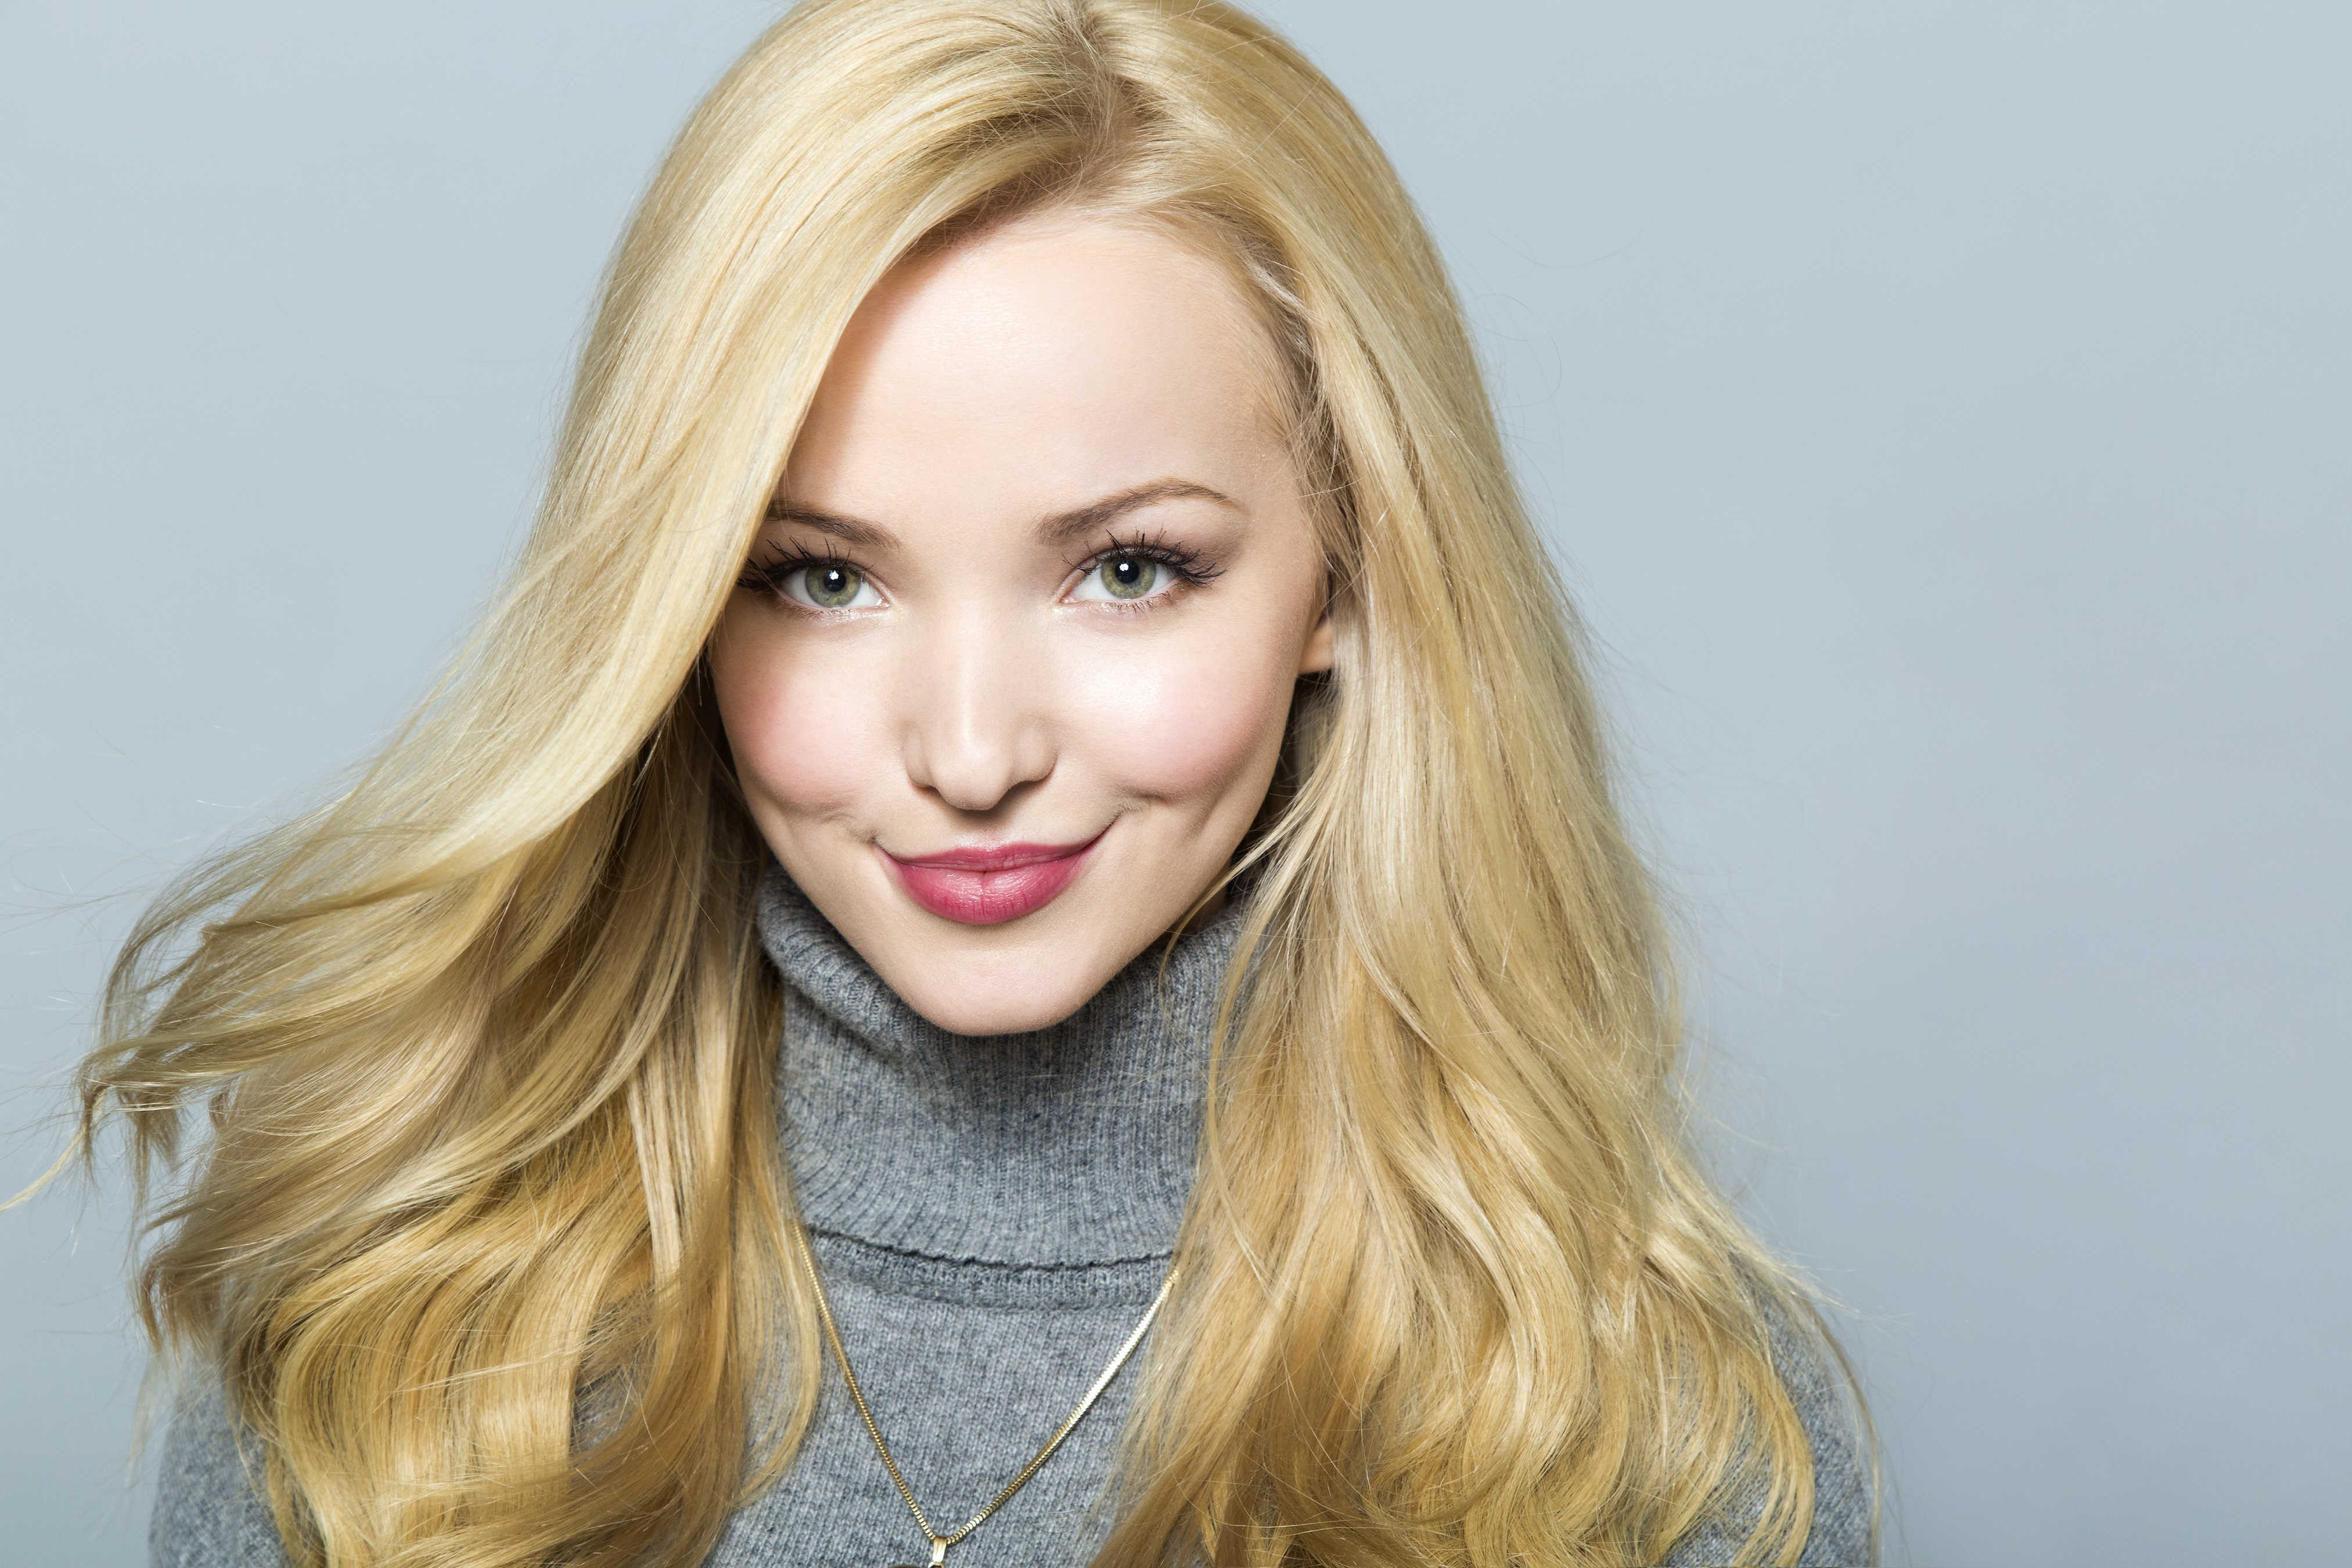 4050x2700 - Dove Cameron Wallpapers 3